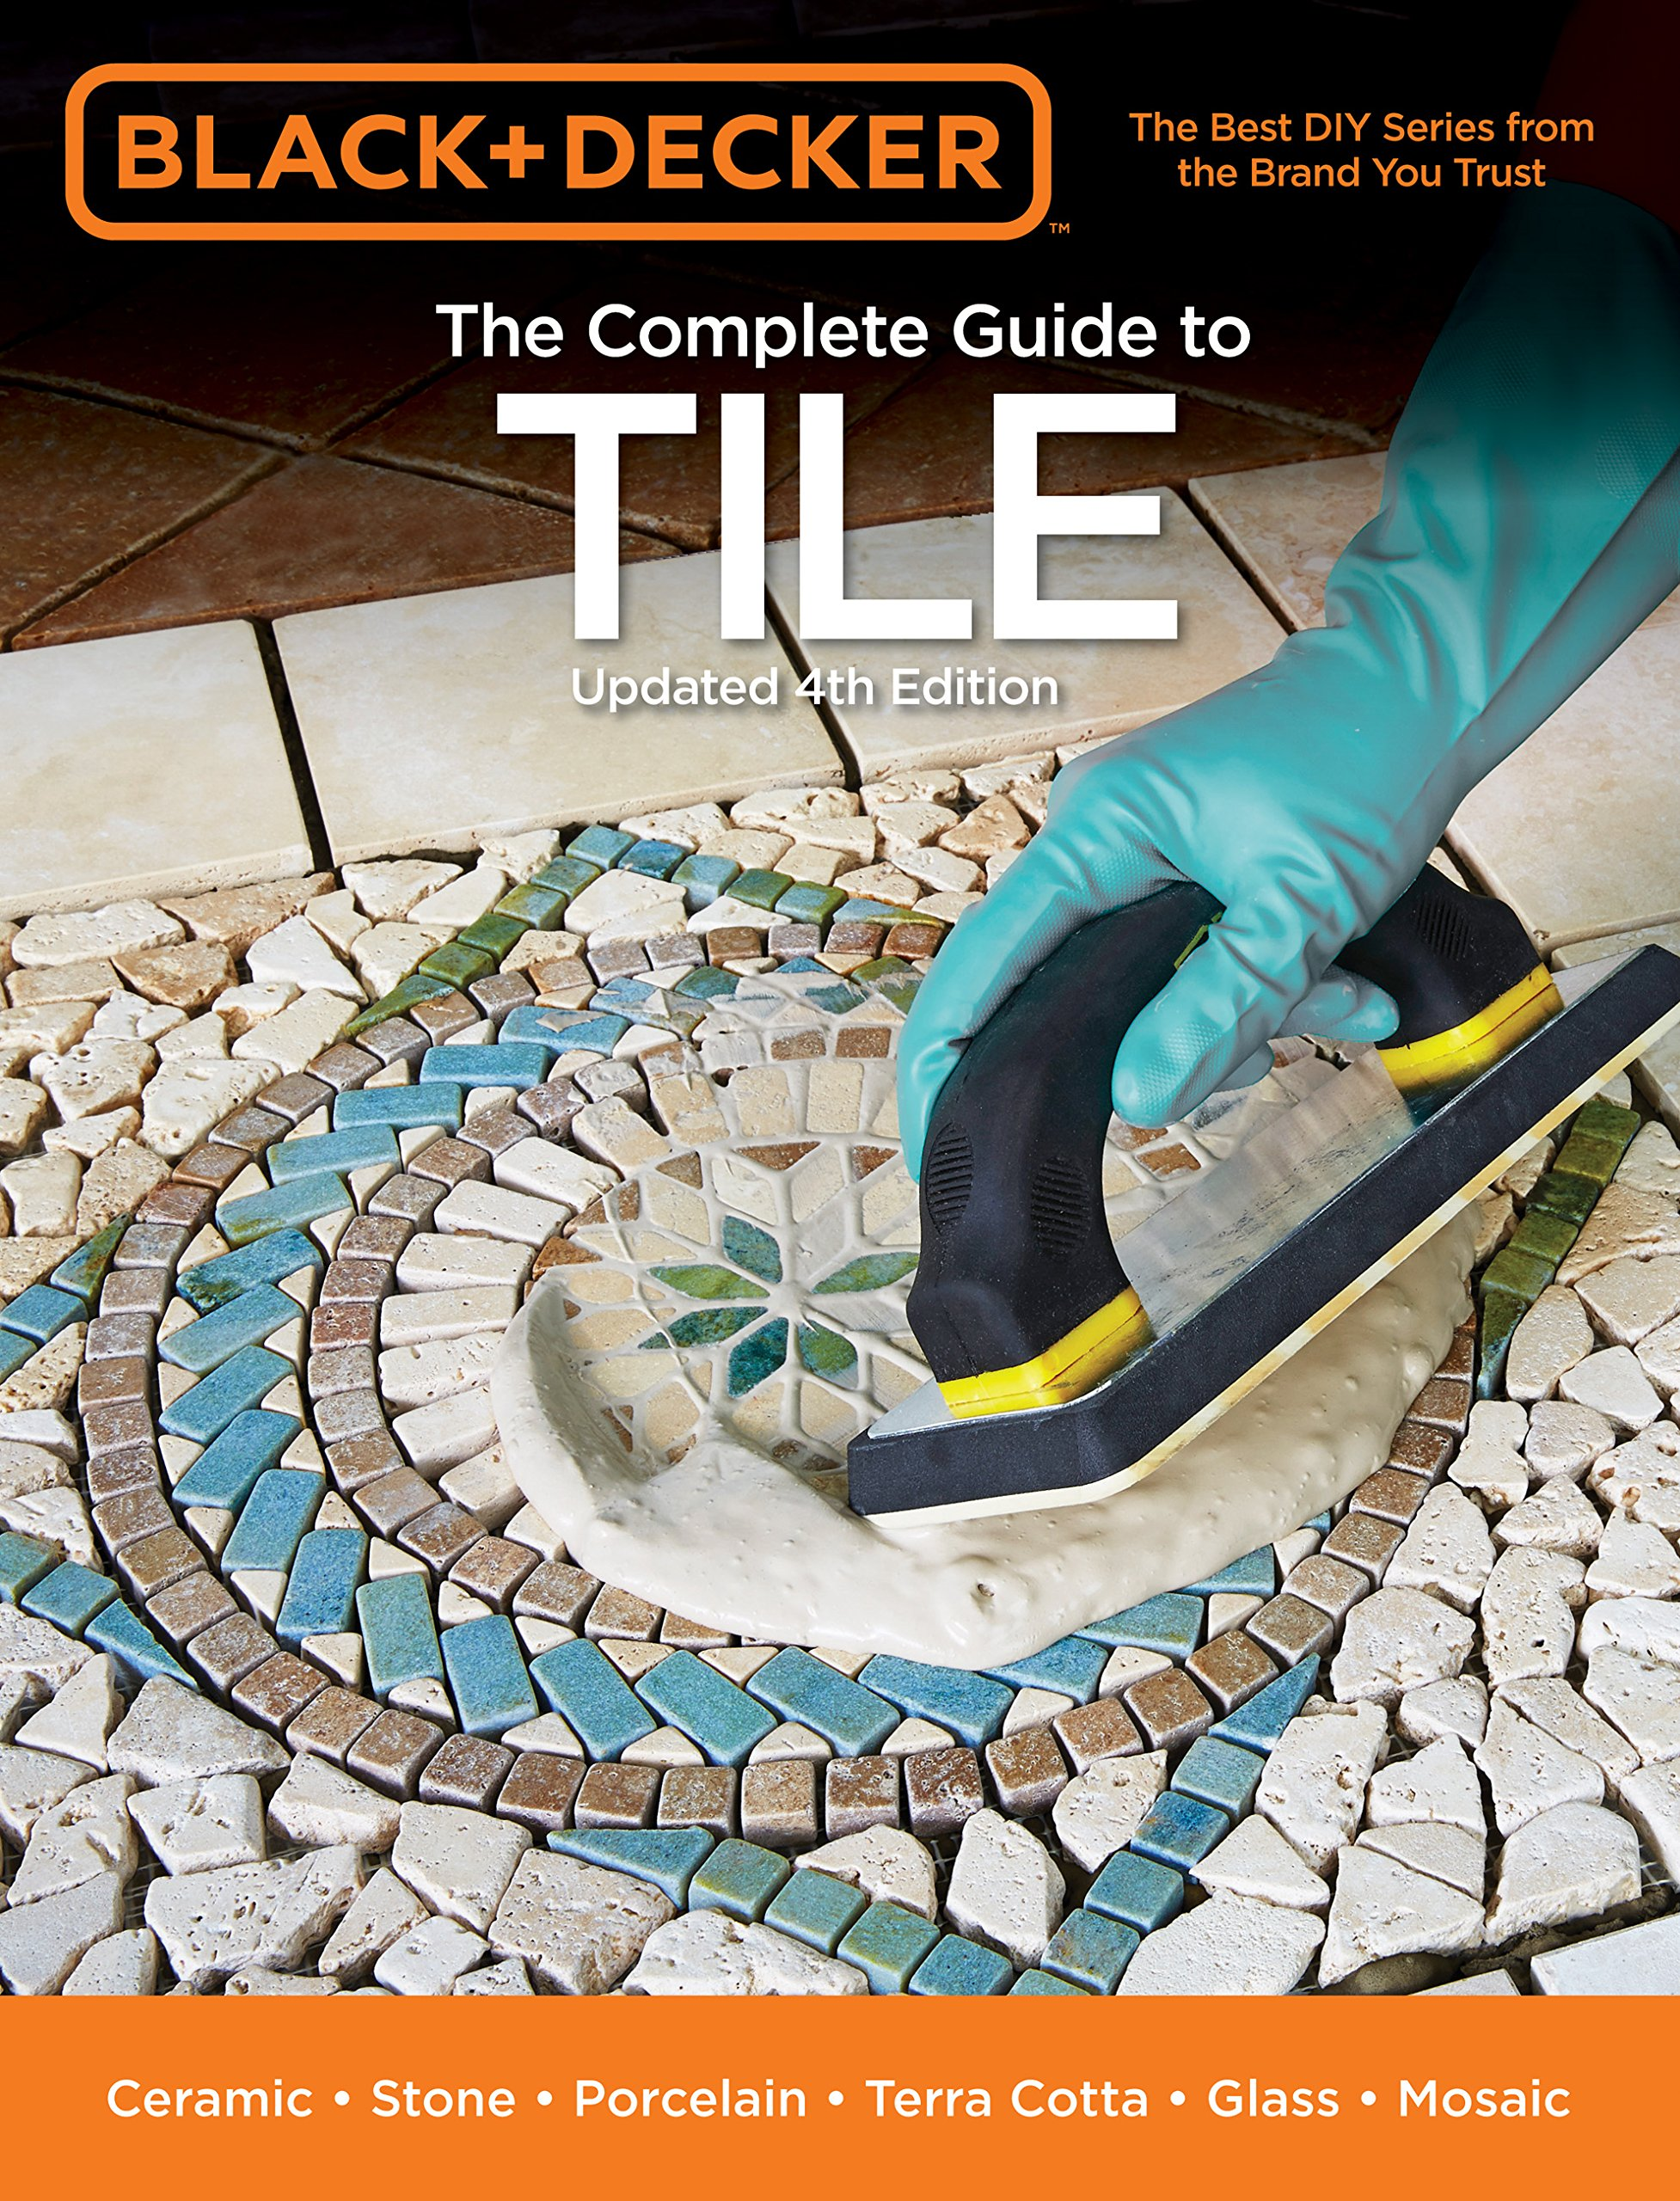 Black Decker The Complete Guide To Tile 4th Edition Ceramic